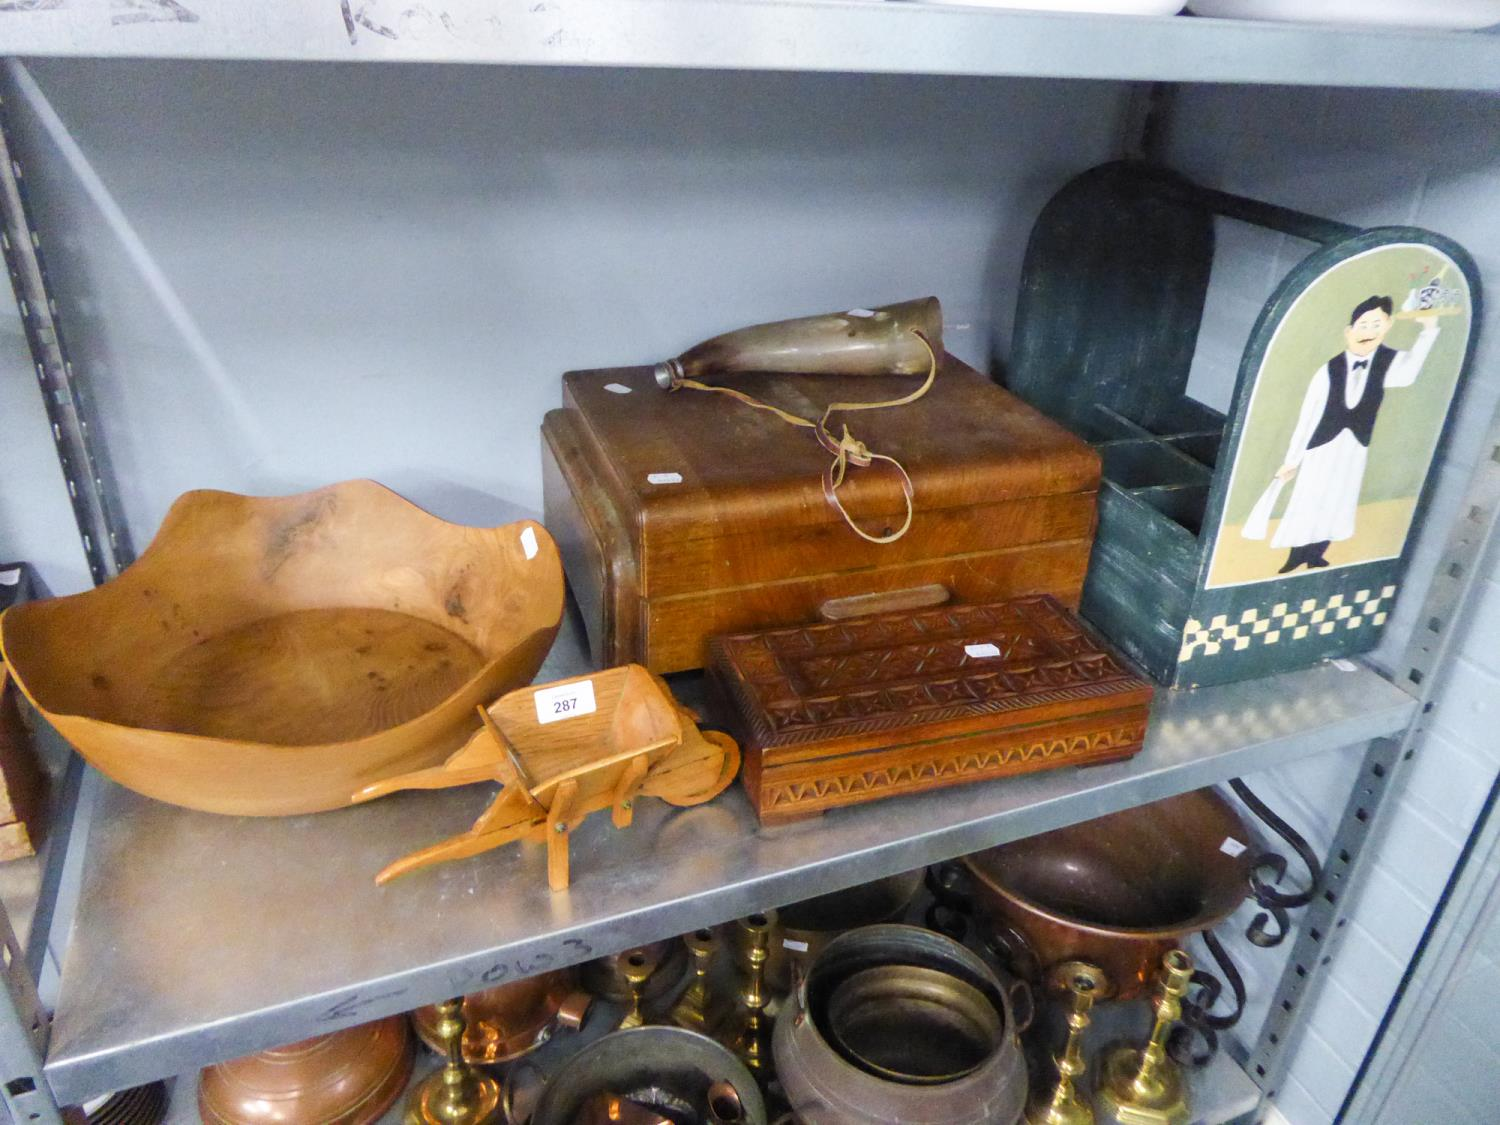 Lot 287 - A WOODEN CUTLERY BOX, A LARGE ELM BOWL, A WOODEN MILK BOTTLE HOLDER AND A TEAK BOX ETC...